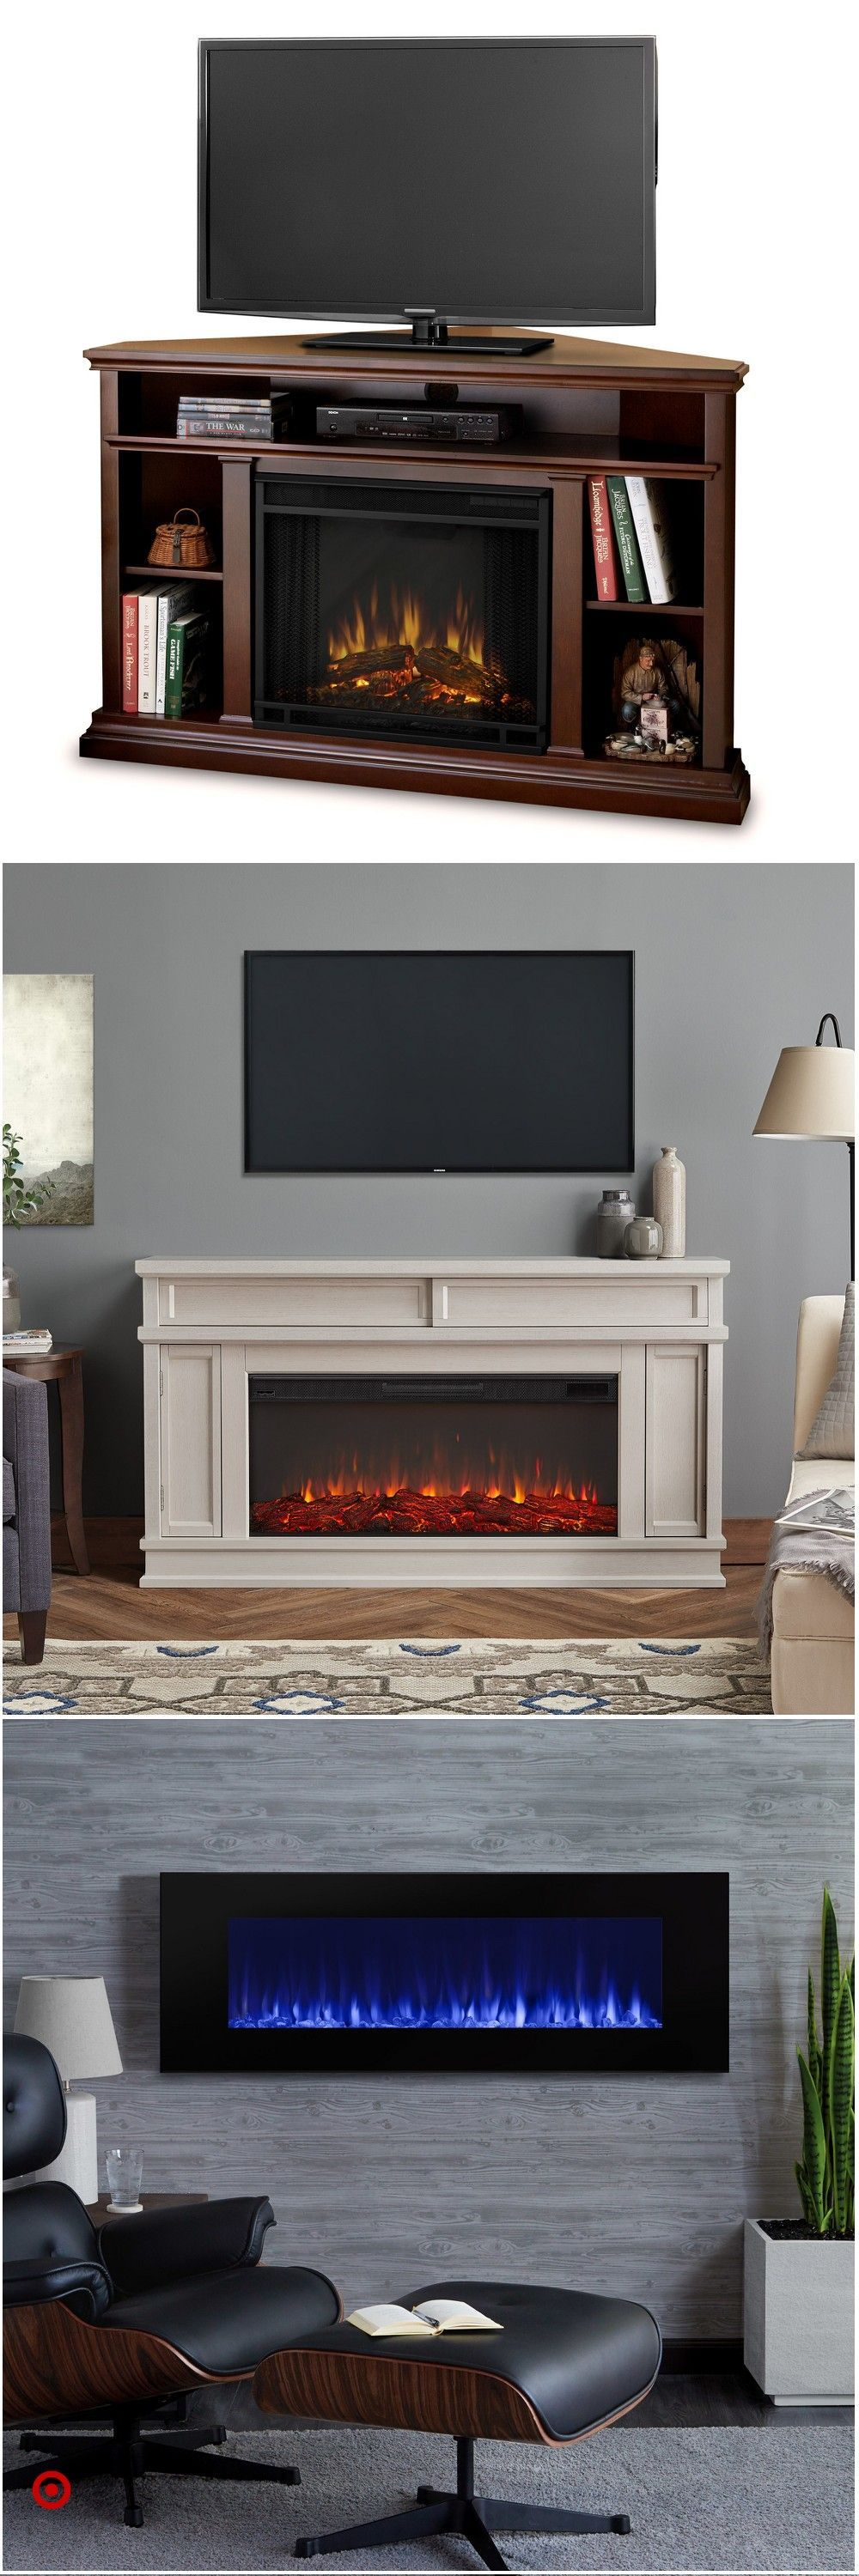 Shop Target For Decorative Fireplaces You Will Love At Great Low Prices Free Shipping On Orders Bedroom Design Fireplace Decor Home Fireplace